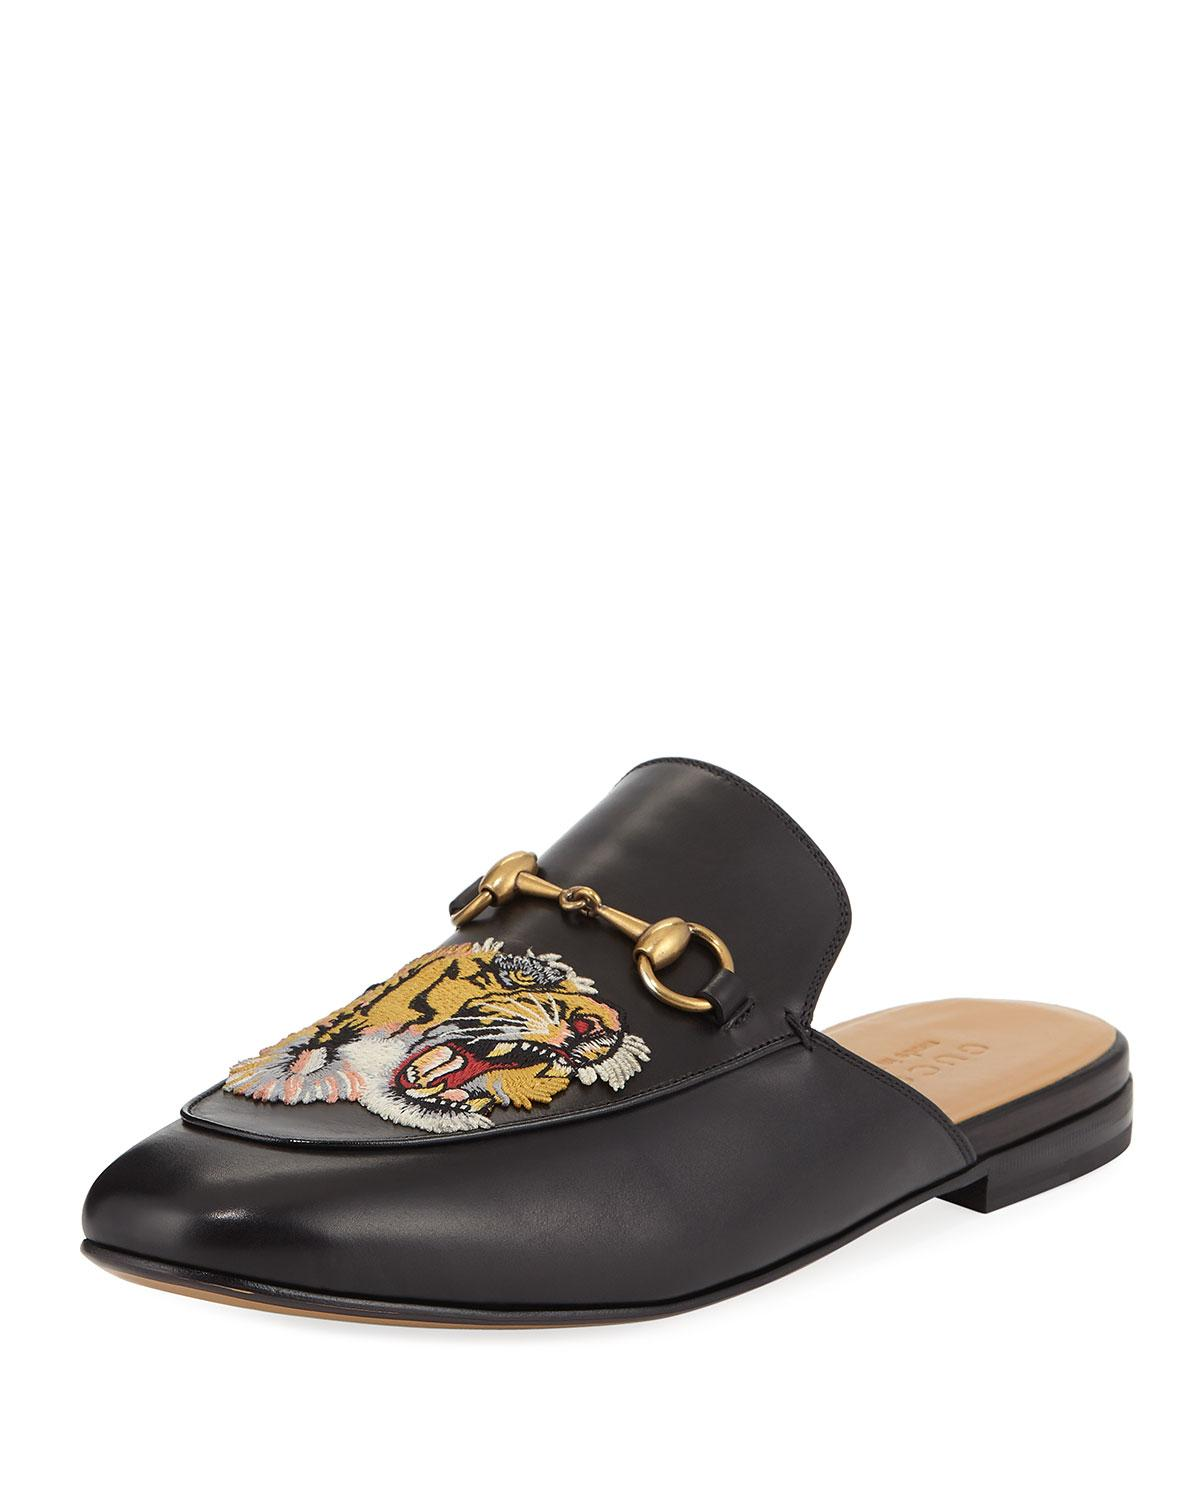 24e22f0b56c Lyst - Gucci Kings Tiger Leather Mule in Black for Men - Save 57%